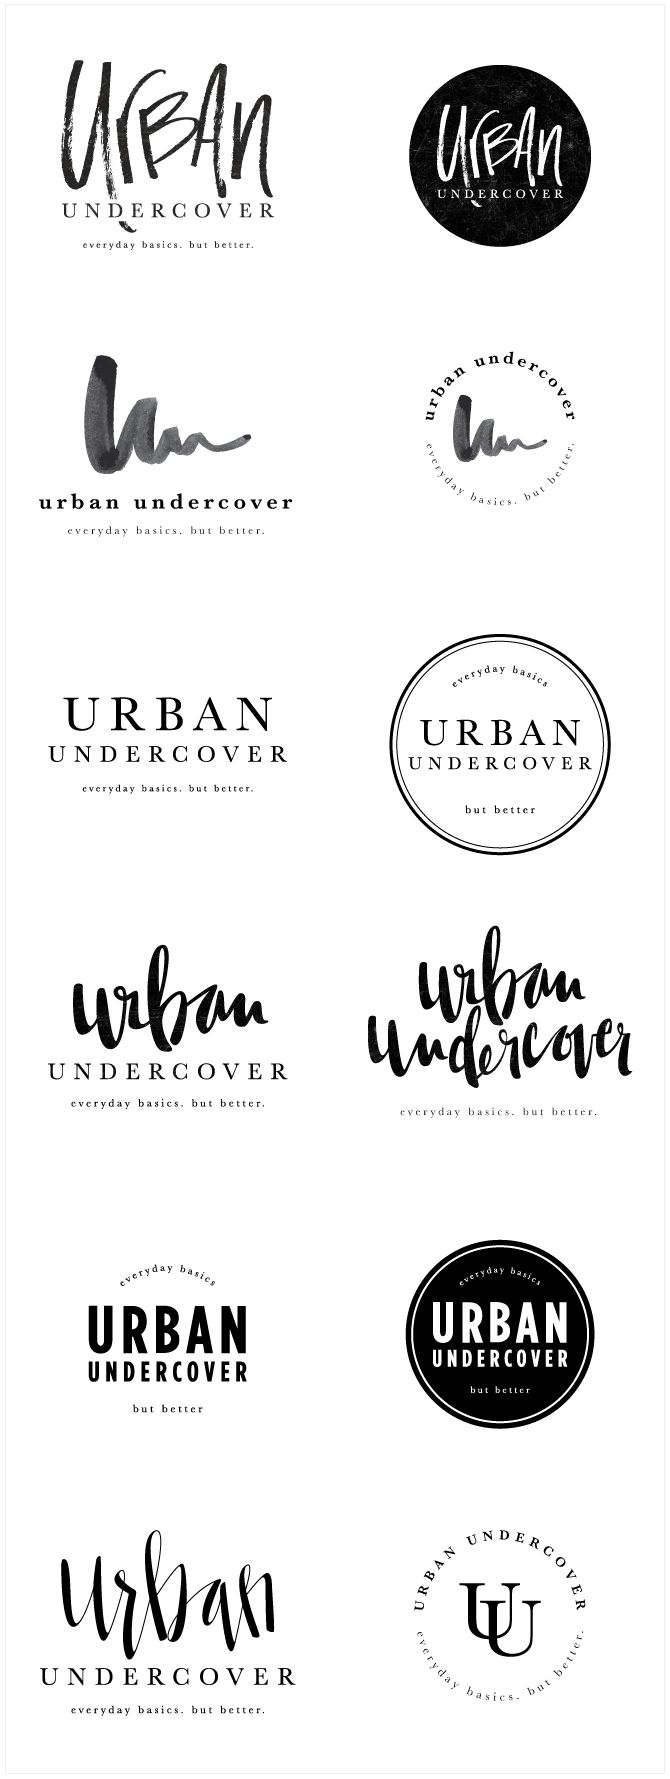 Logo Design Ideas adobe illustrator logo design tutorial no coreldraw tutorial creative logo design ideas Brand Launch Urban Undercover Salted Ink Design Co Logo Concepts Logo